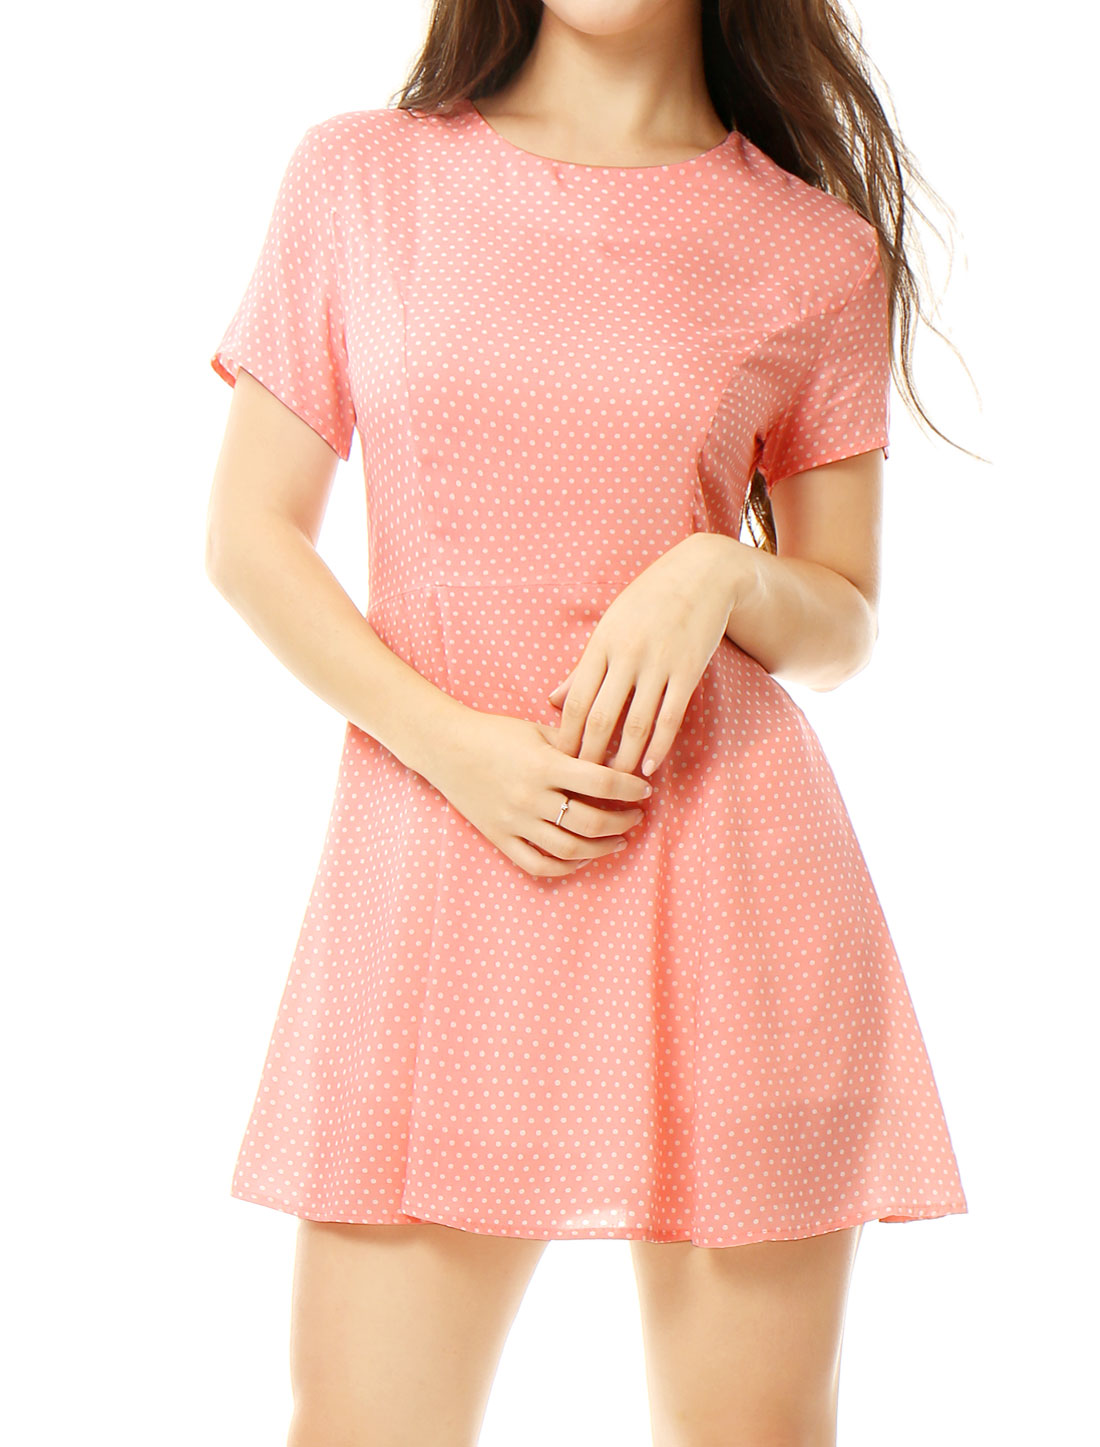 Women Polka Dots Lace Up Back Short Sleeves A Line Dress Pink XL